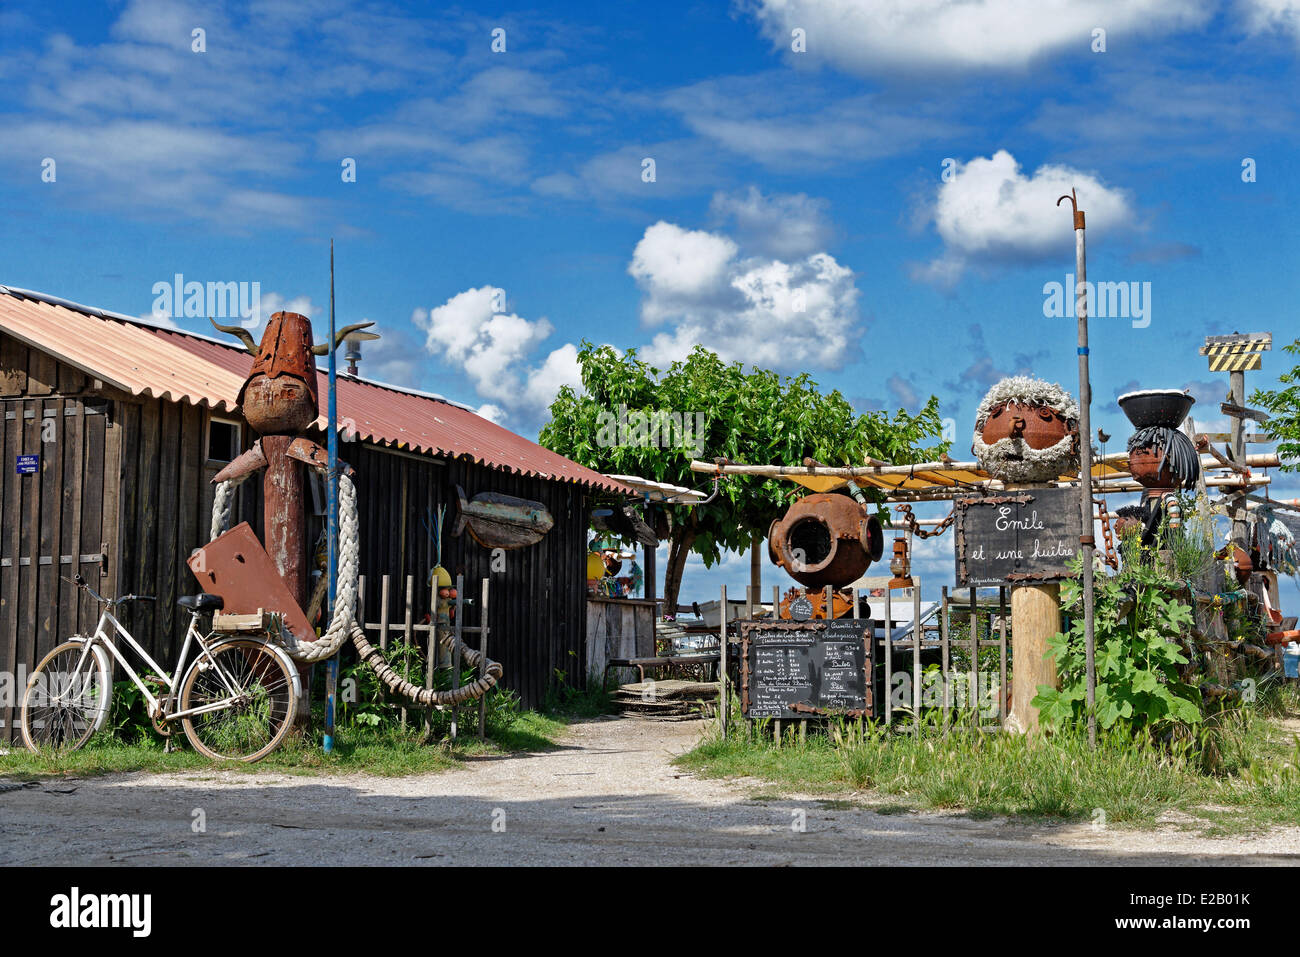 France, Gironde, L'Herbe, rusted metal sculptures by Thierry Despujols in an oyster in front of a wooden hut - Stock Image